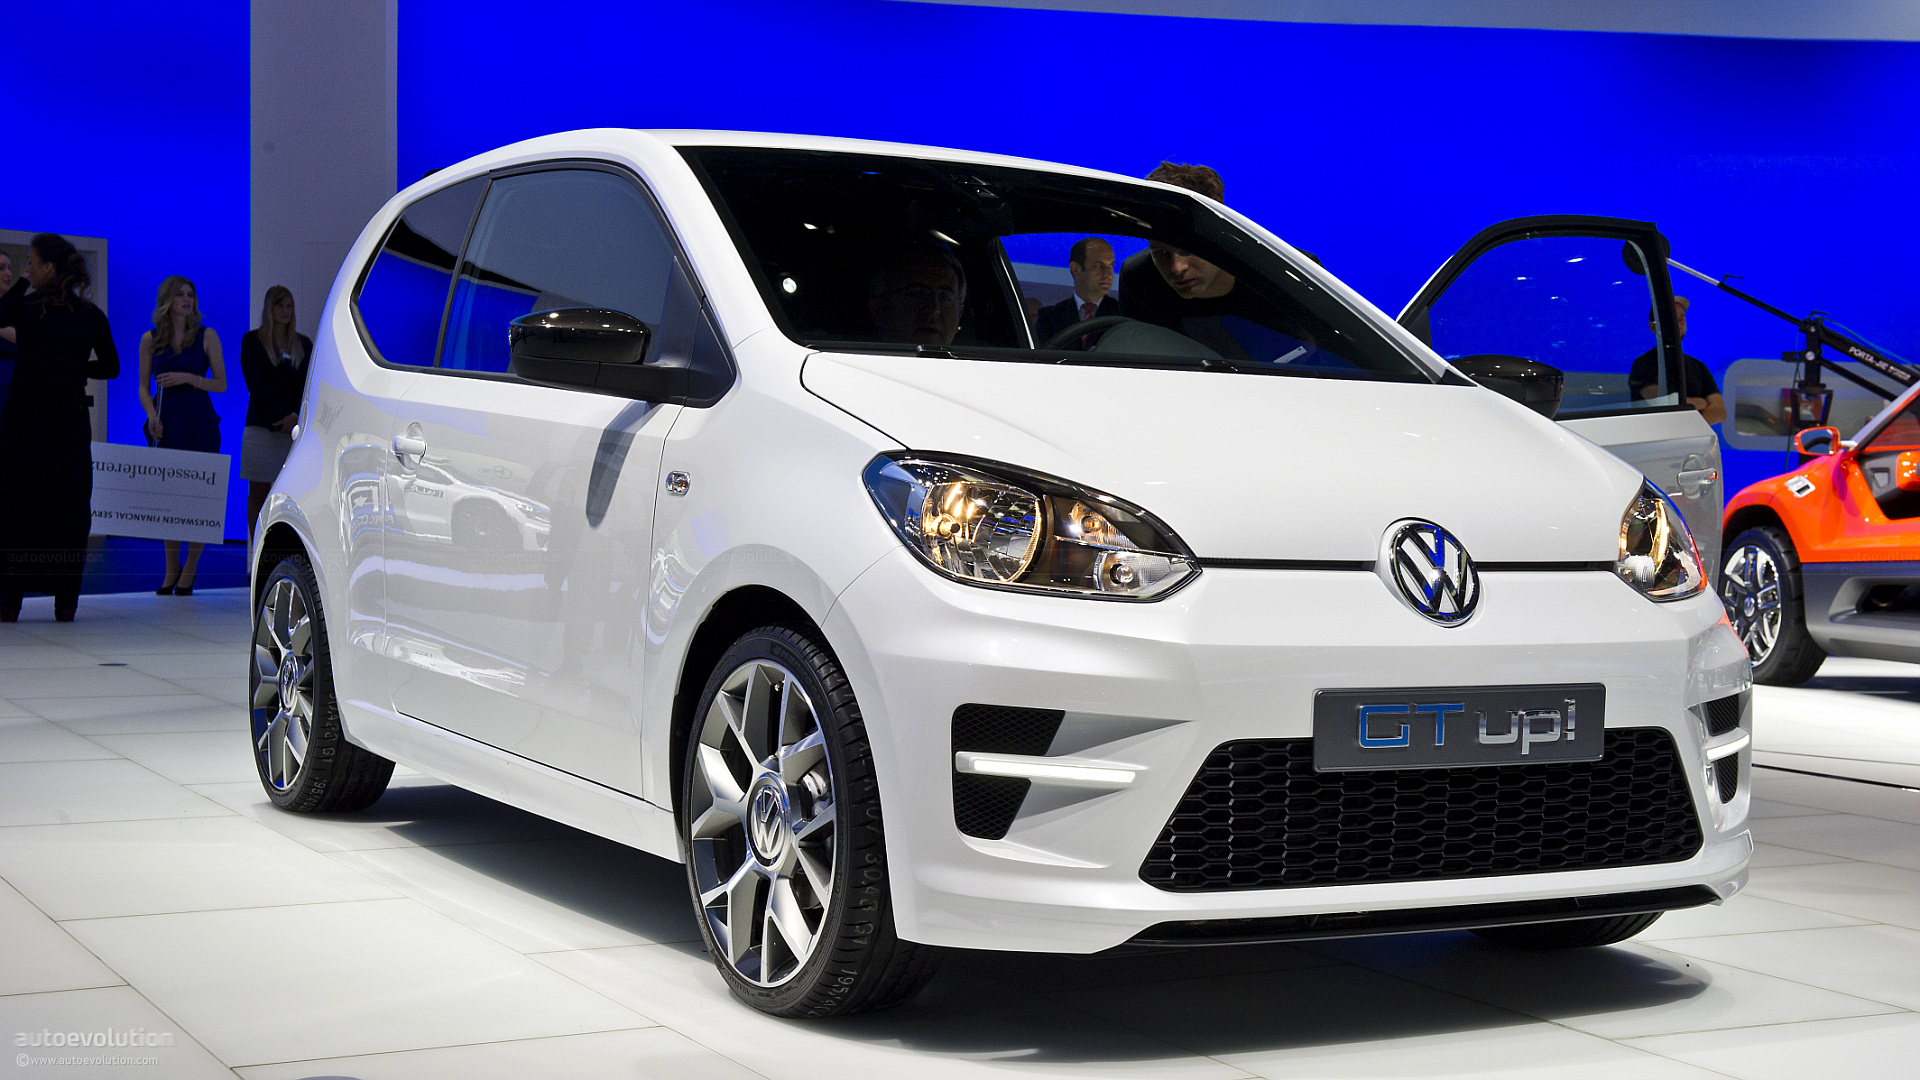 volkswagen gt up confirmed for may 2015 debut 100 hp 1 liter turbo engine autoevolution. Black Bedroom Furniture Sets. Home Design Ideas